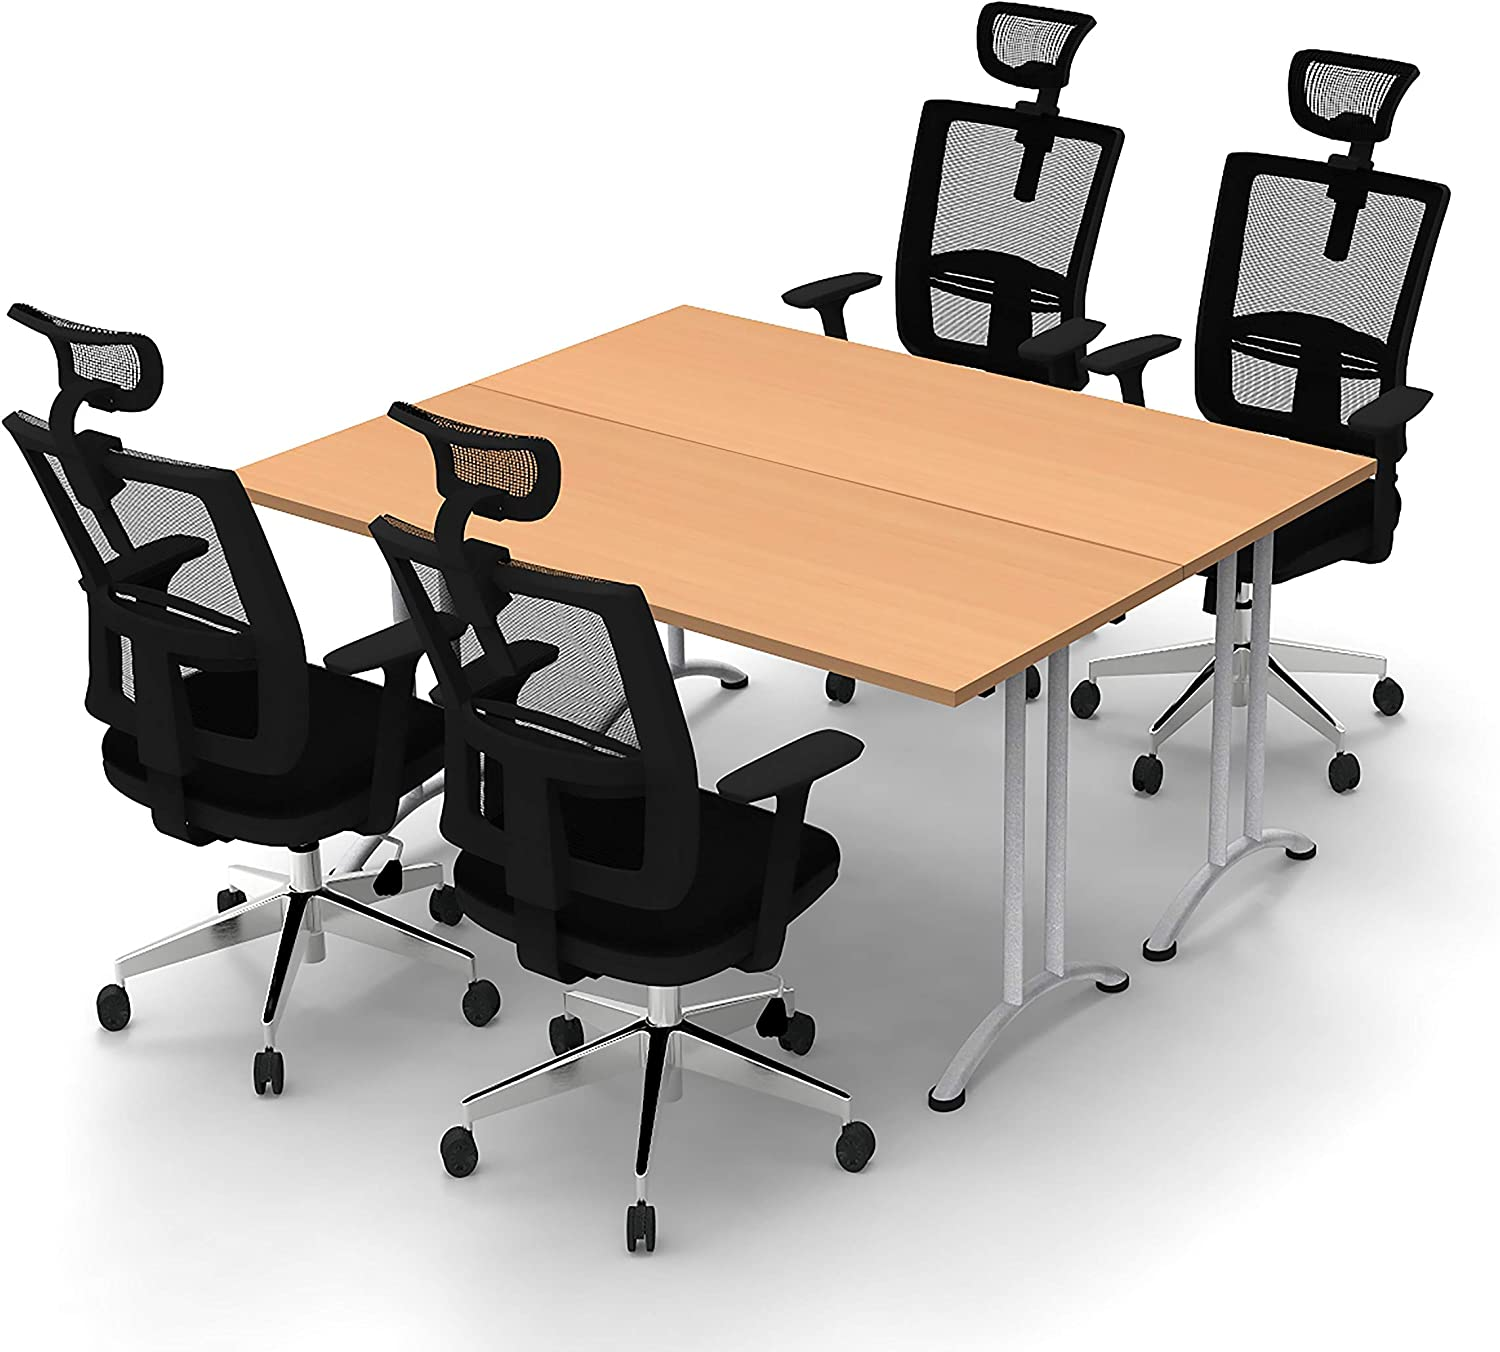 Amazon.com : Conference Tables Meeting Tables Seminar Tables